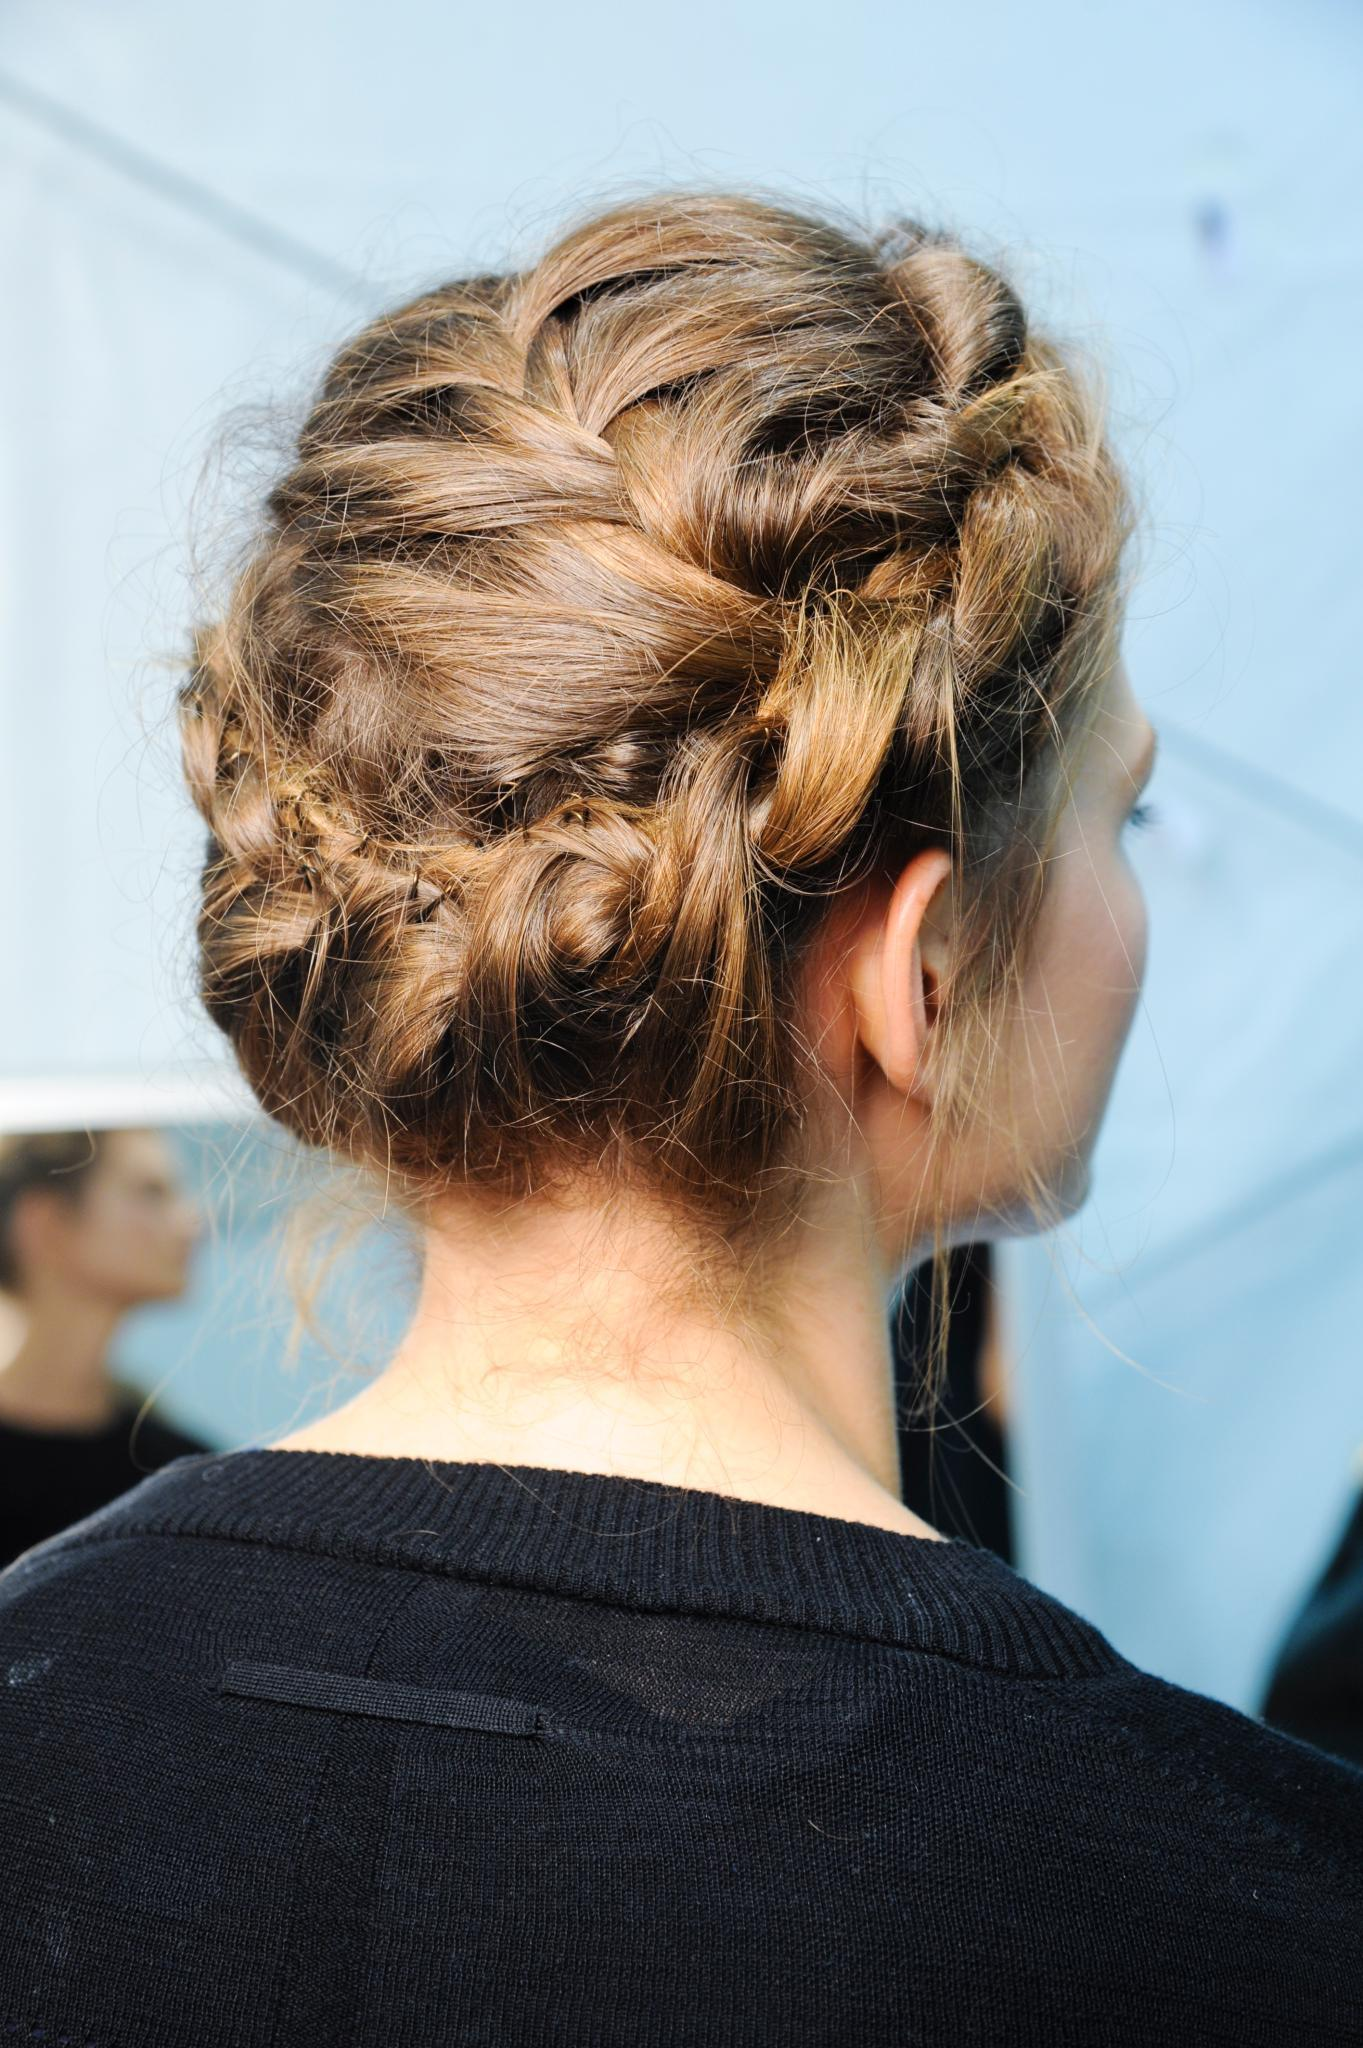 Side shot of a woman with medium brown hair styled into a crown braid updo, wearing a black top and posing backstage